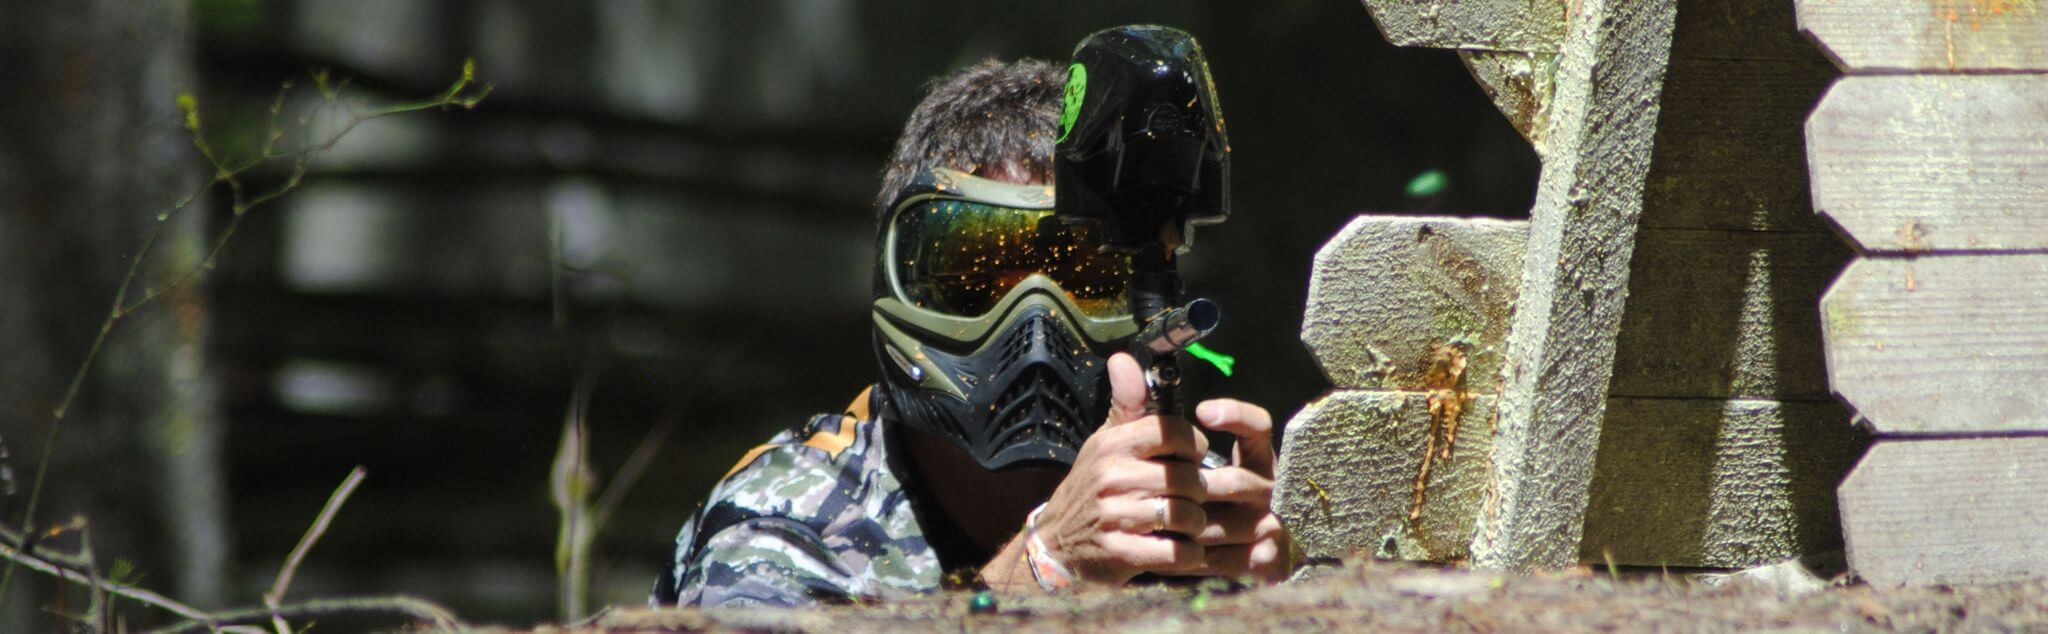 Paintball in Falkirk